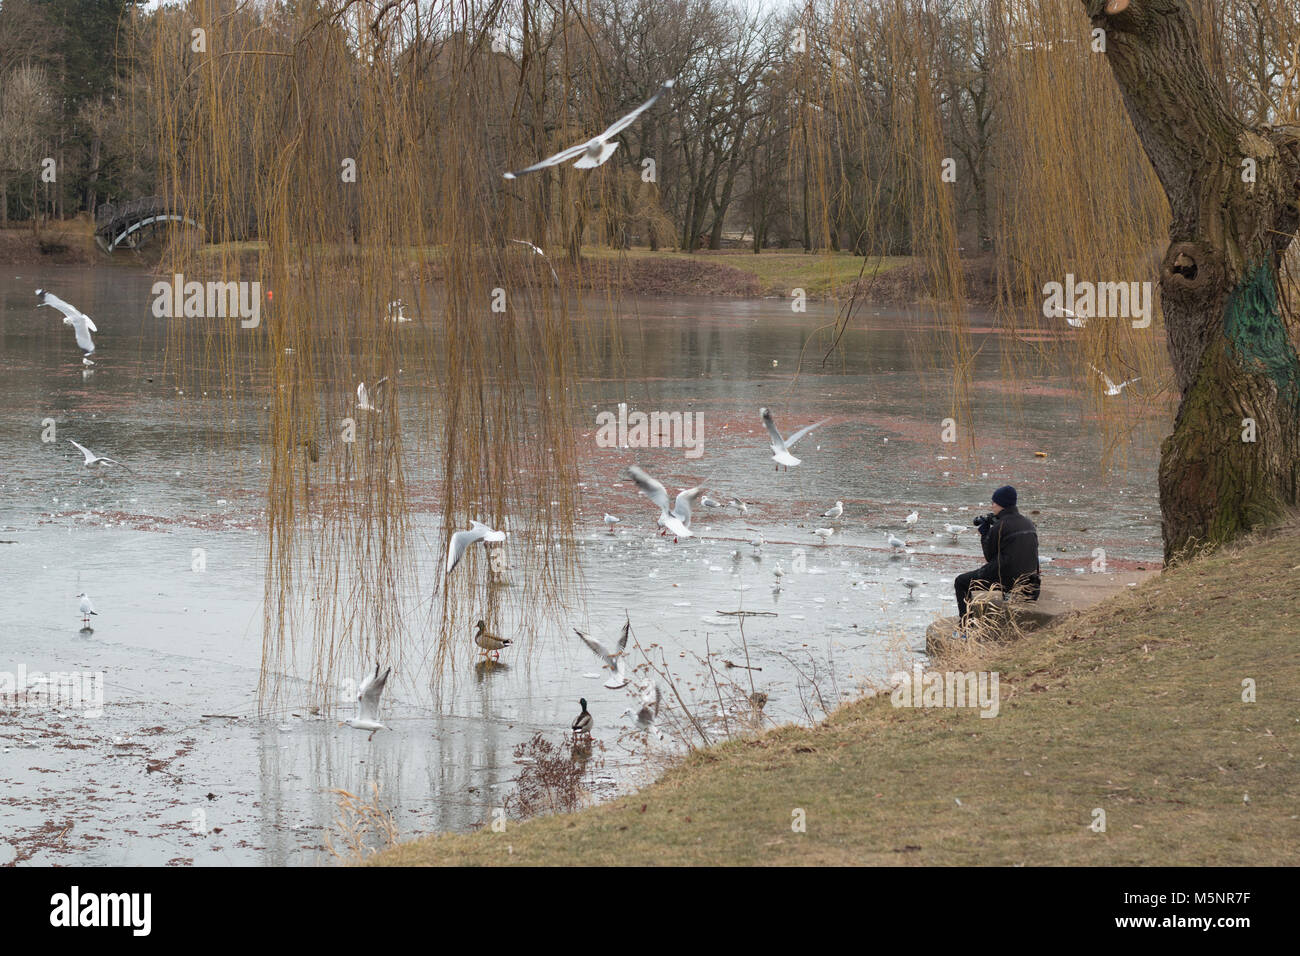 Magdeburg, Germany - February 25,2018: A hobby photographer takes pictures of seagulls and ducks looking for food Stock Photo